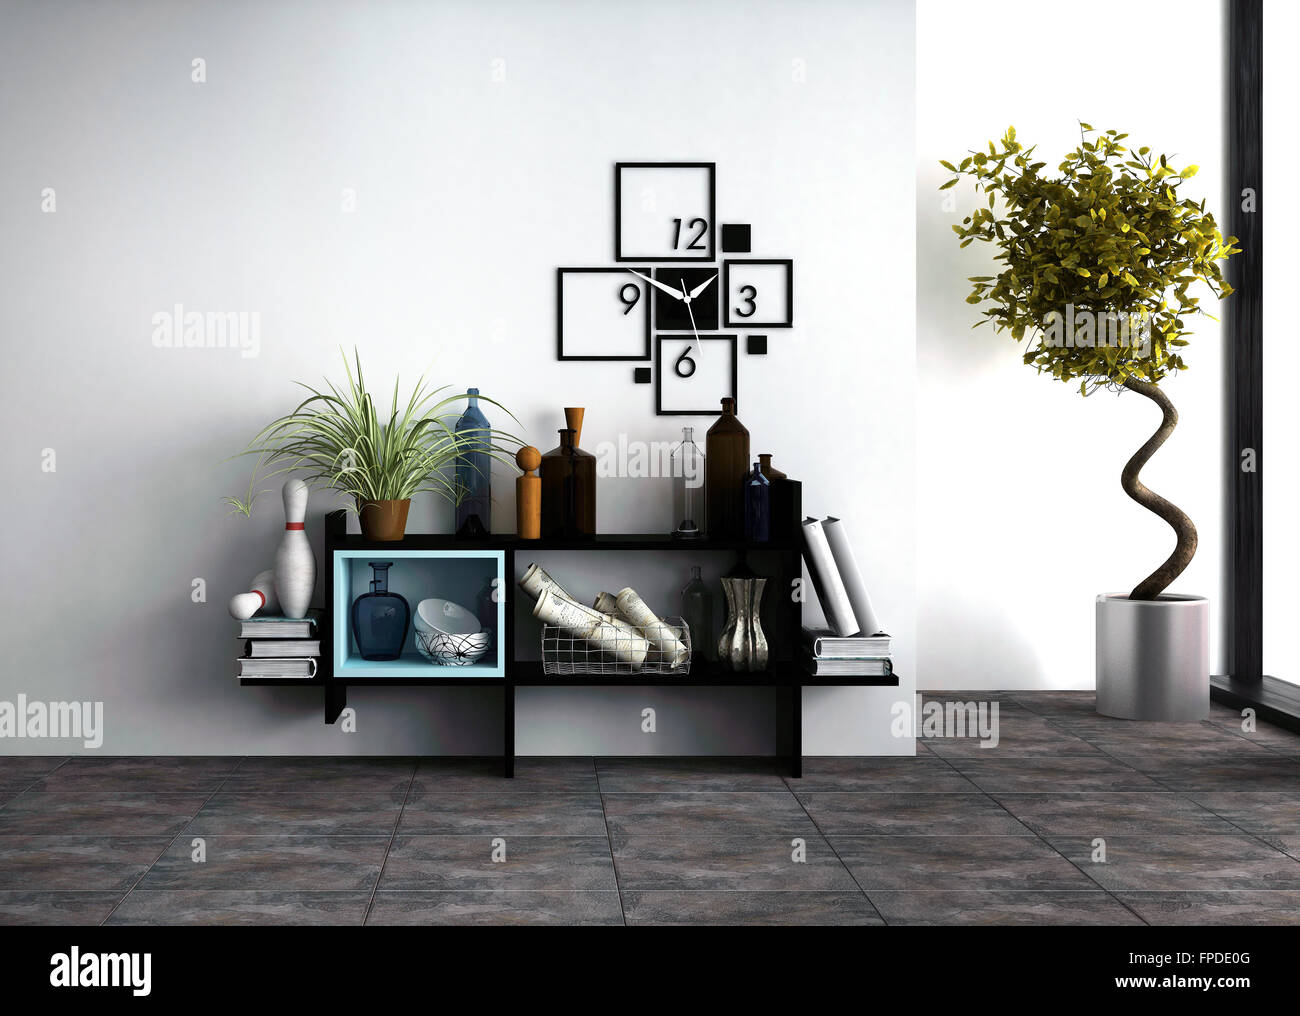 Wall Mounted Shelves With Personal Effects And A Designer Clock In A Modern  Living Room Interior With A Potted Spiral Twist Topi